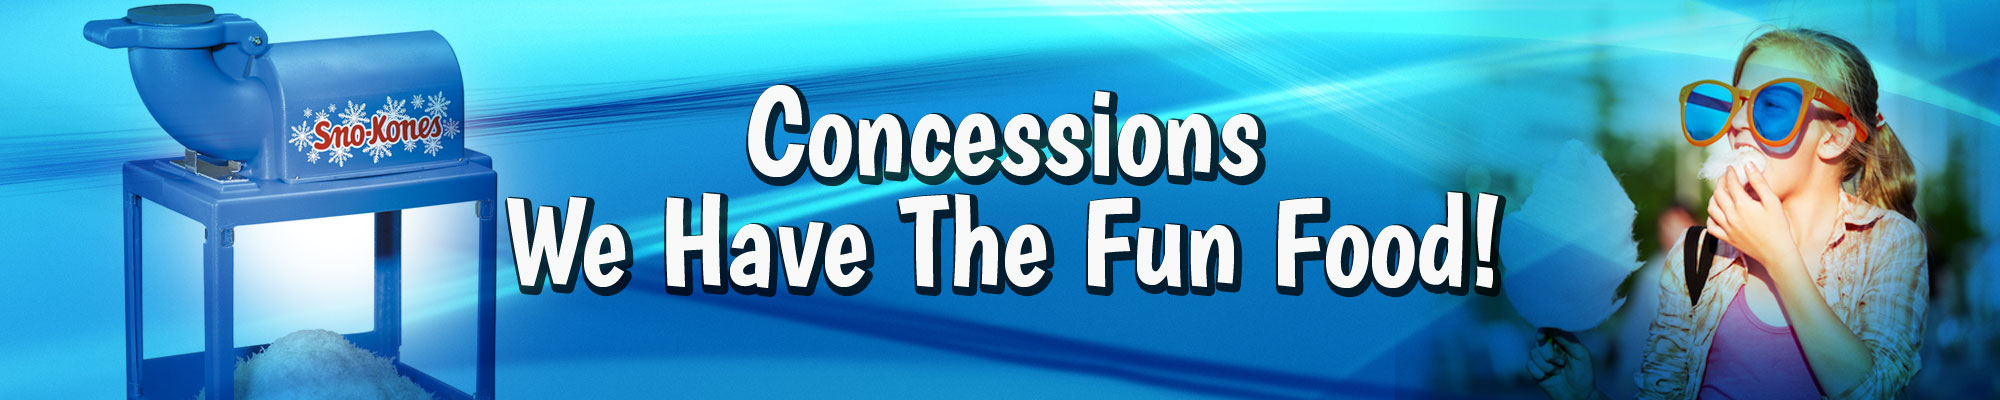 Concession Machines & Fun Foods